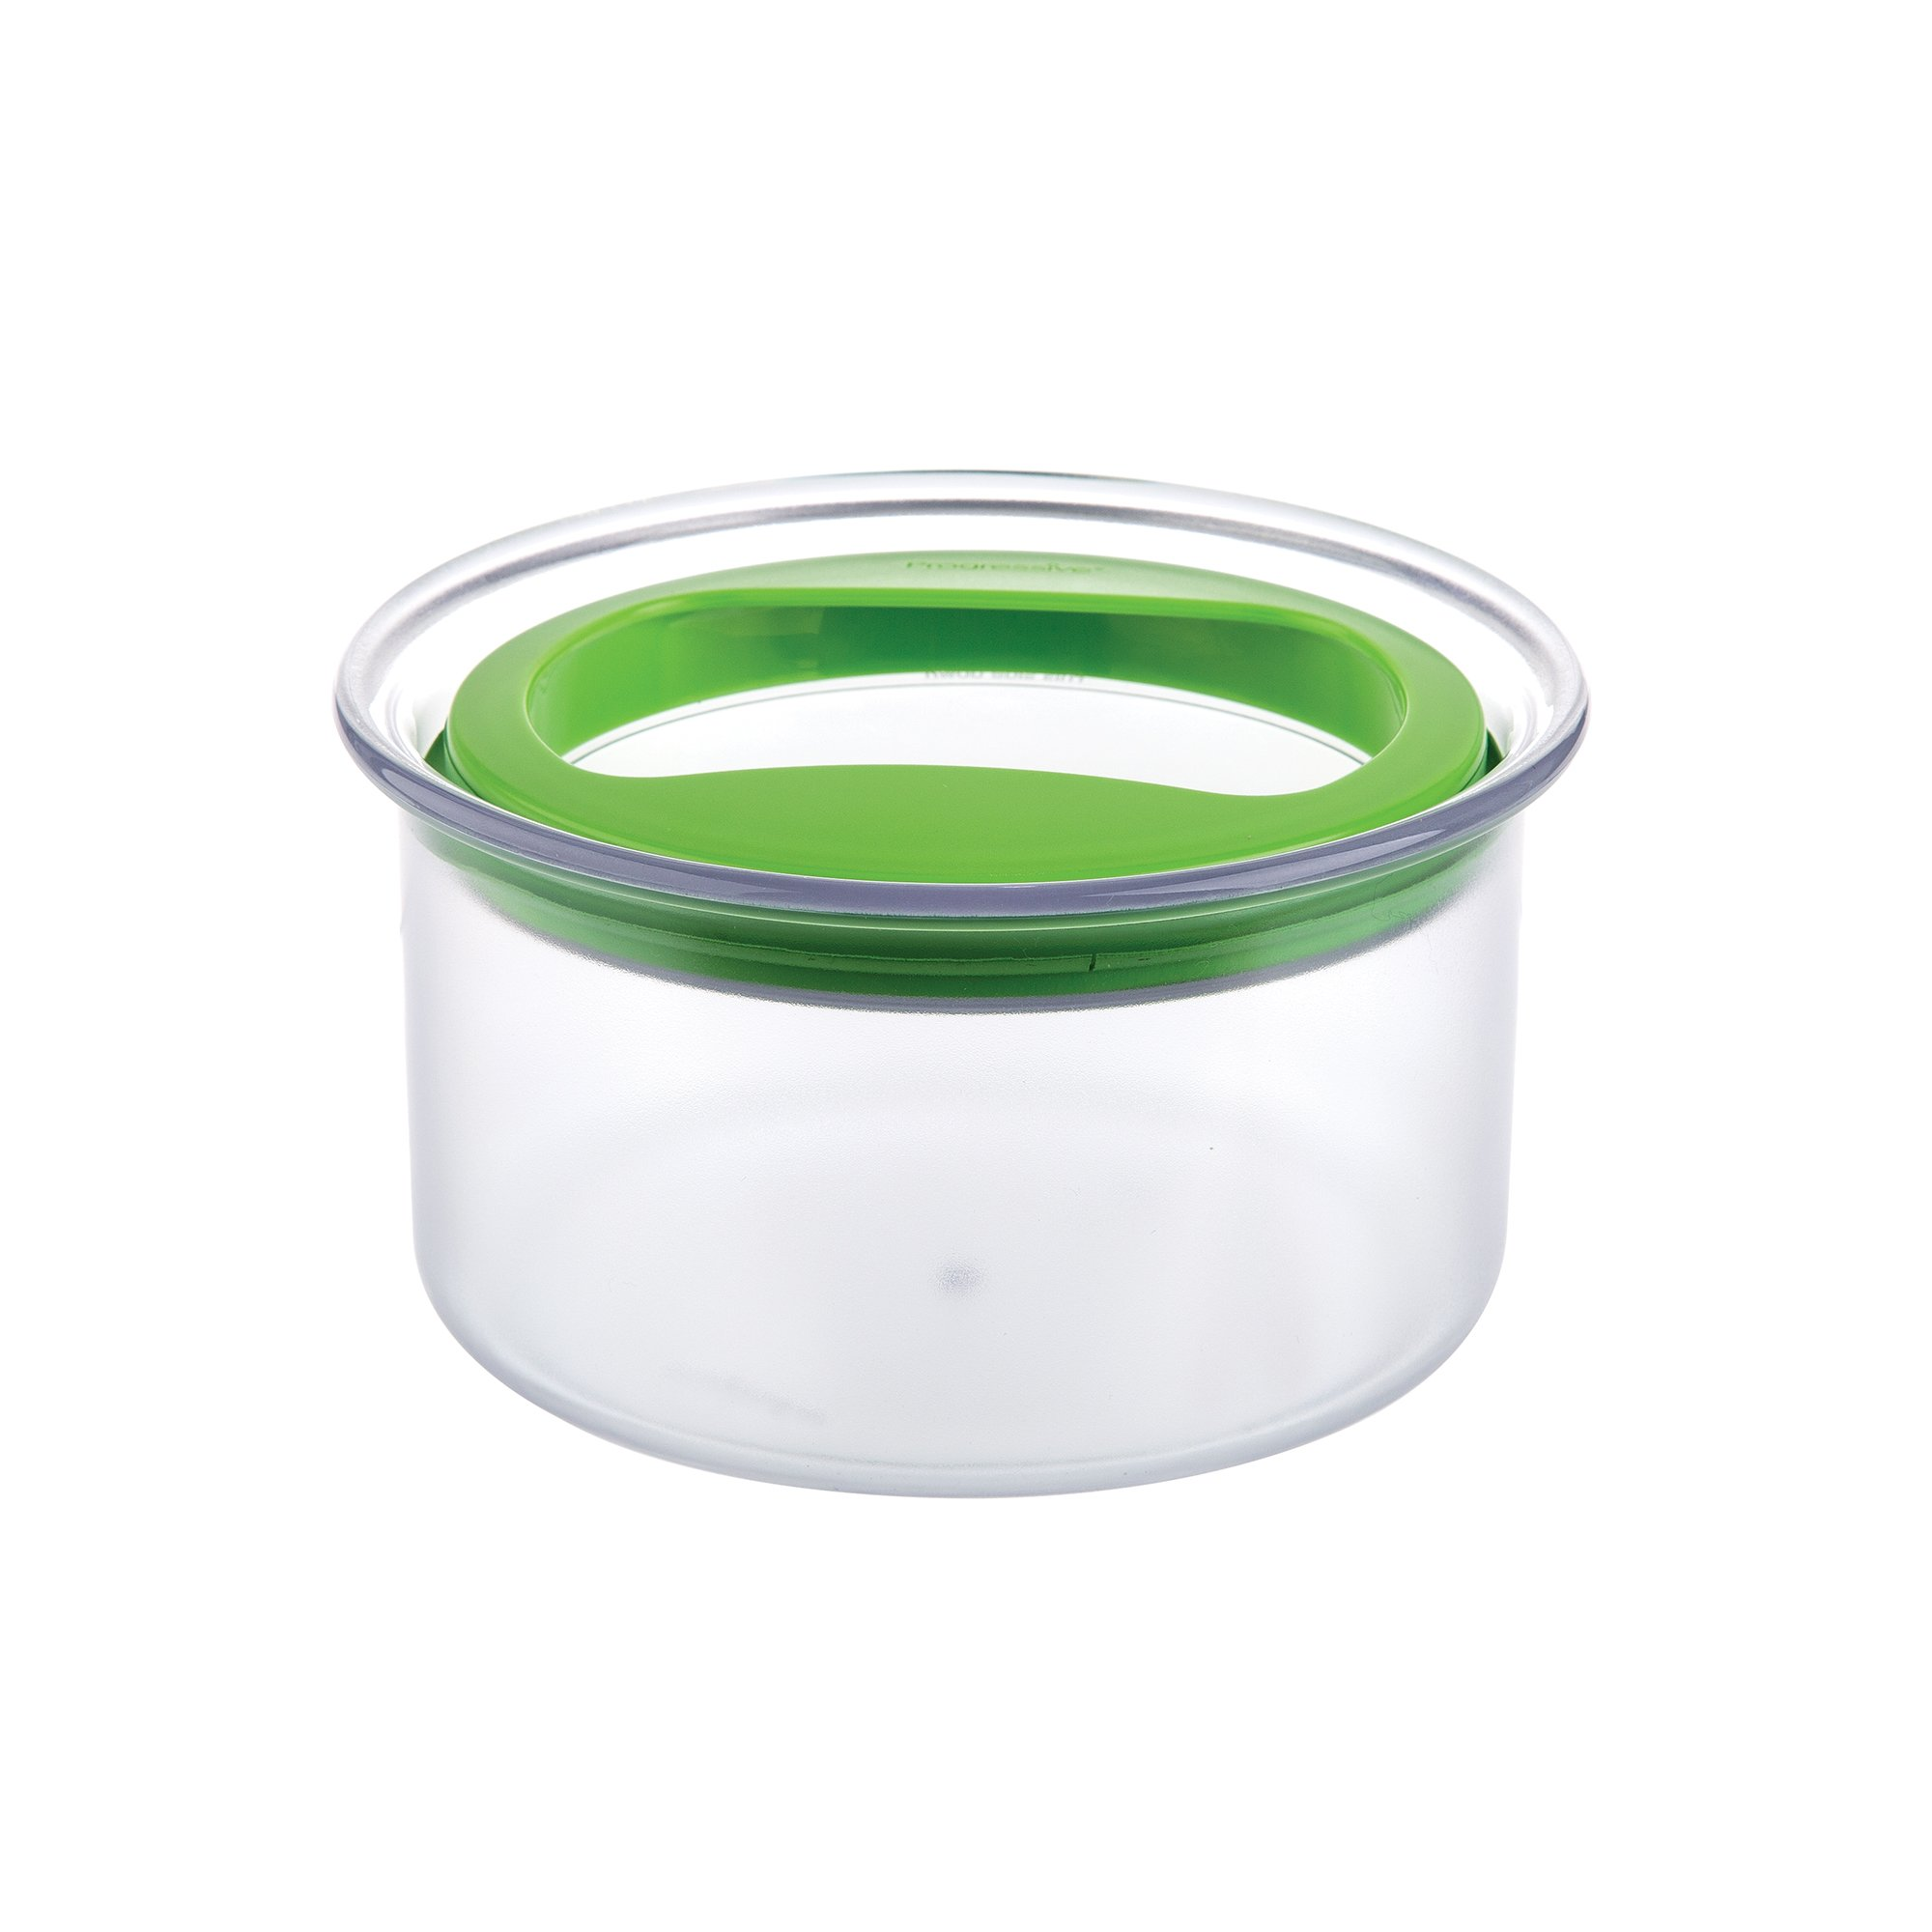 Prepworks by Progressive Fresh Guacamole ProKeeper, Keep Your Guacamole Fresh for Days, Air Tight Sealing Lid, Perfect for Serving